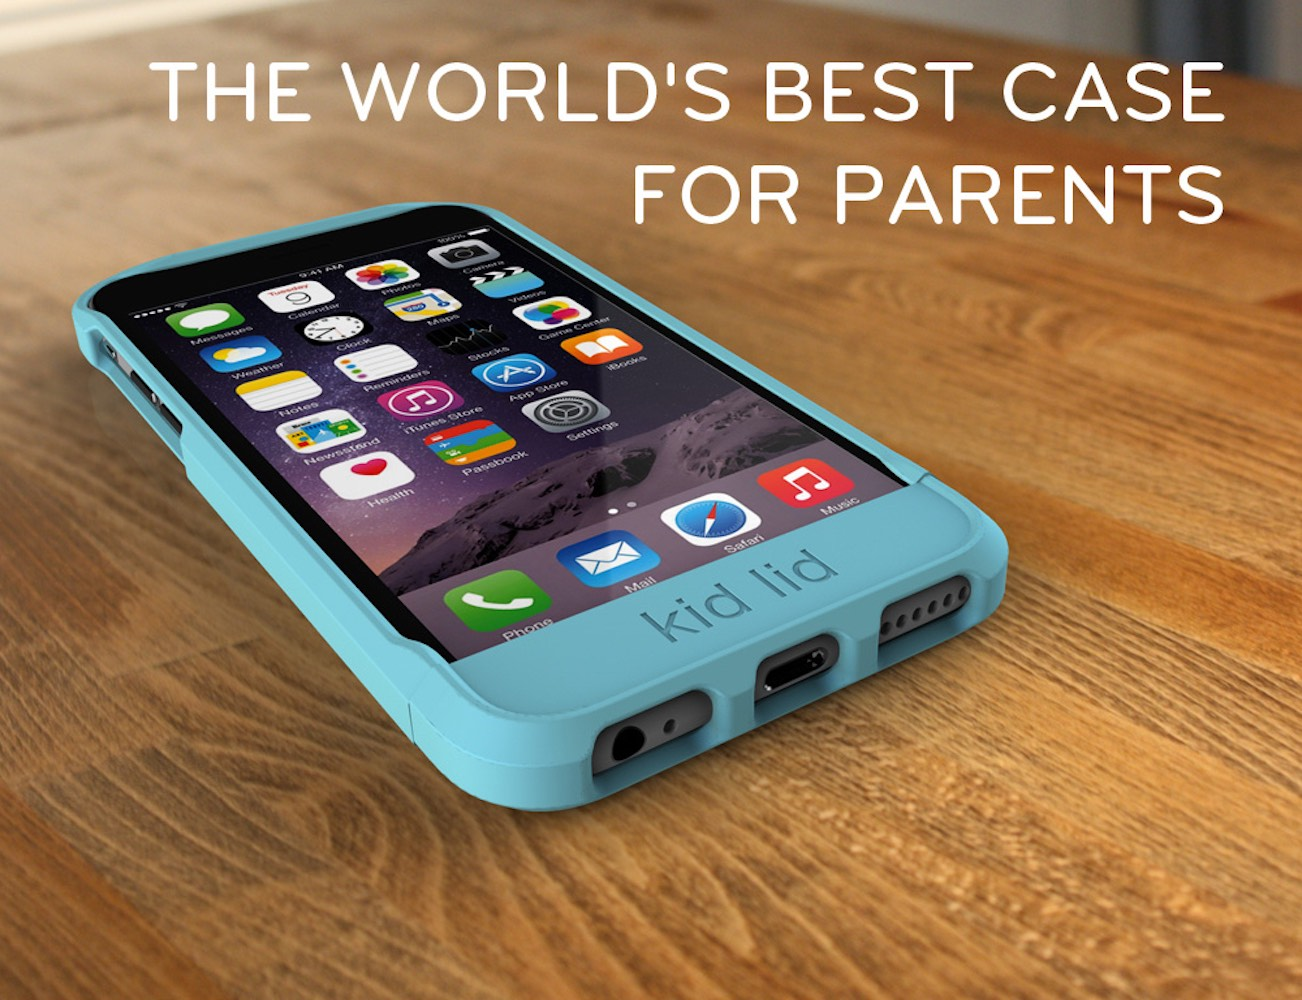 worlds-best-case-for-parents-01